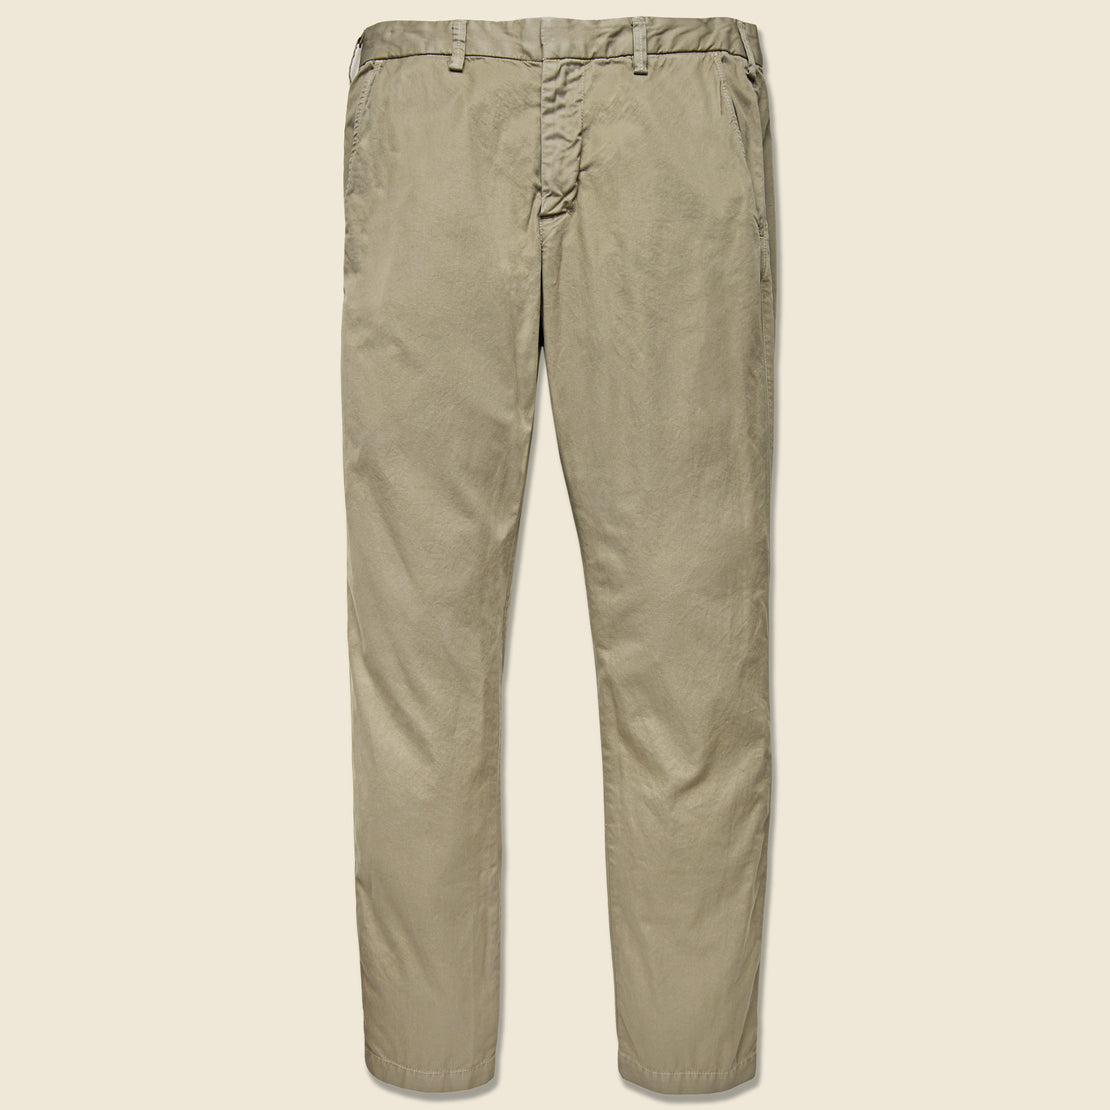 Save Khaki Light Twill Trouser - Khaki